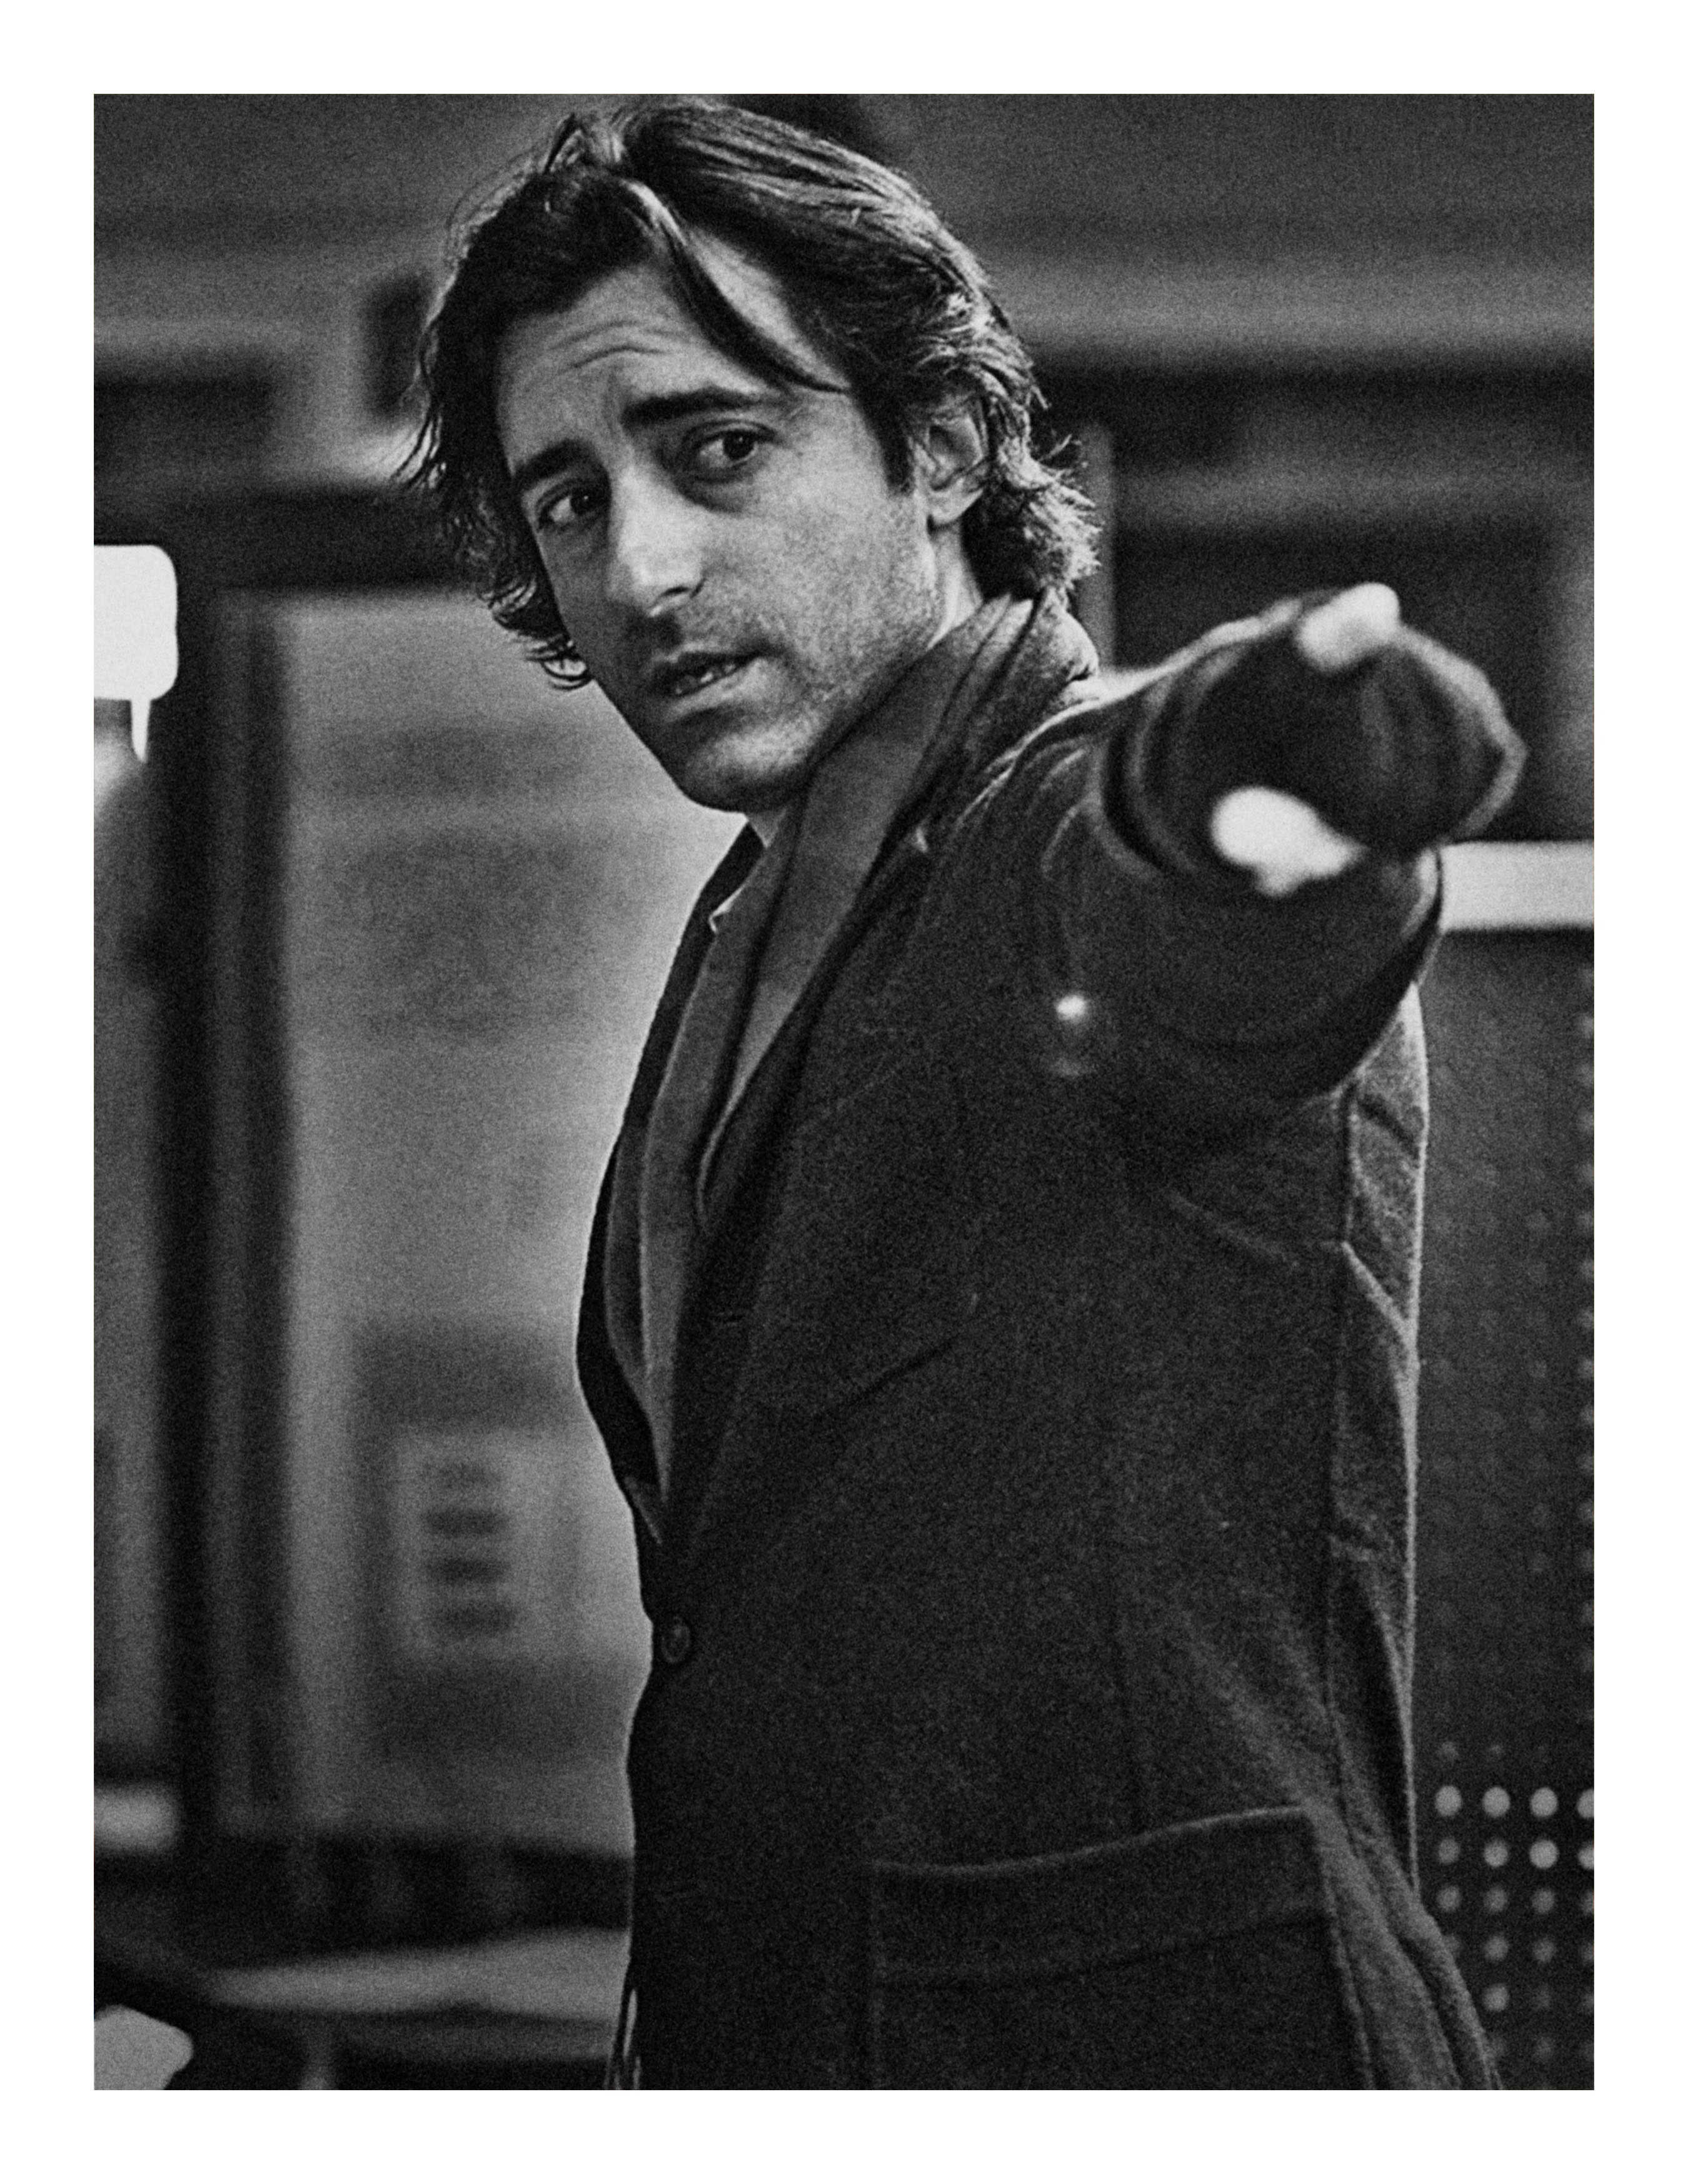 Noah Baumbach (Frances Ha) interview / Oh Comely